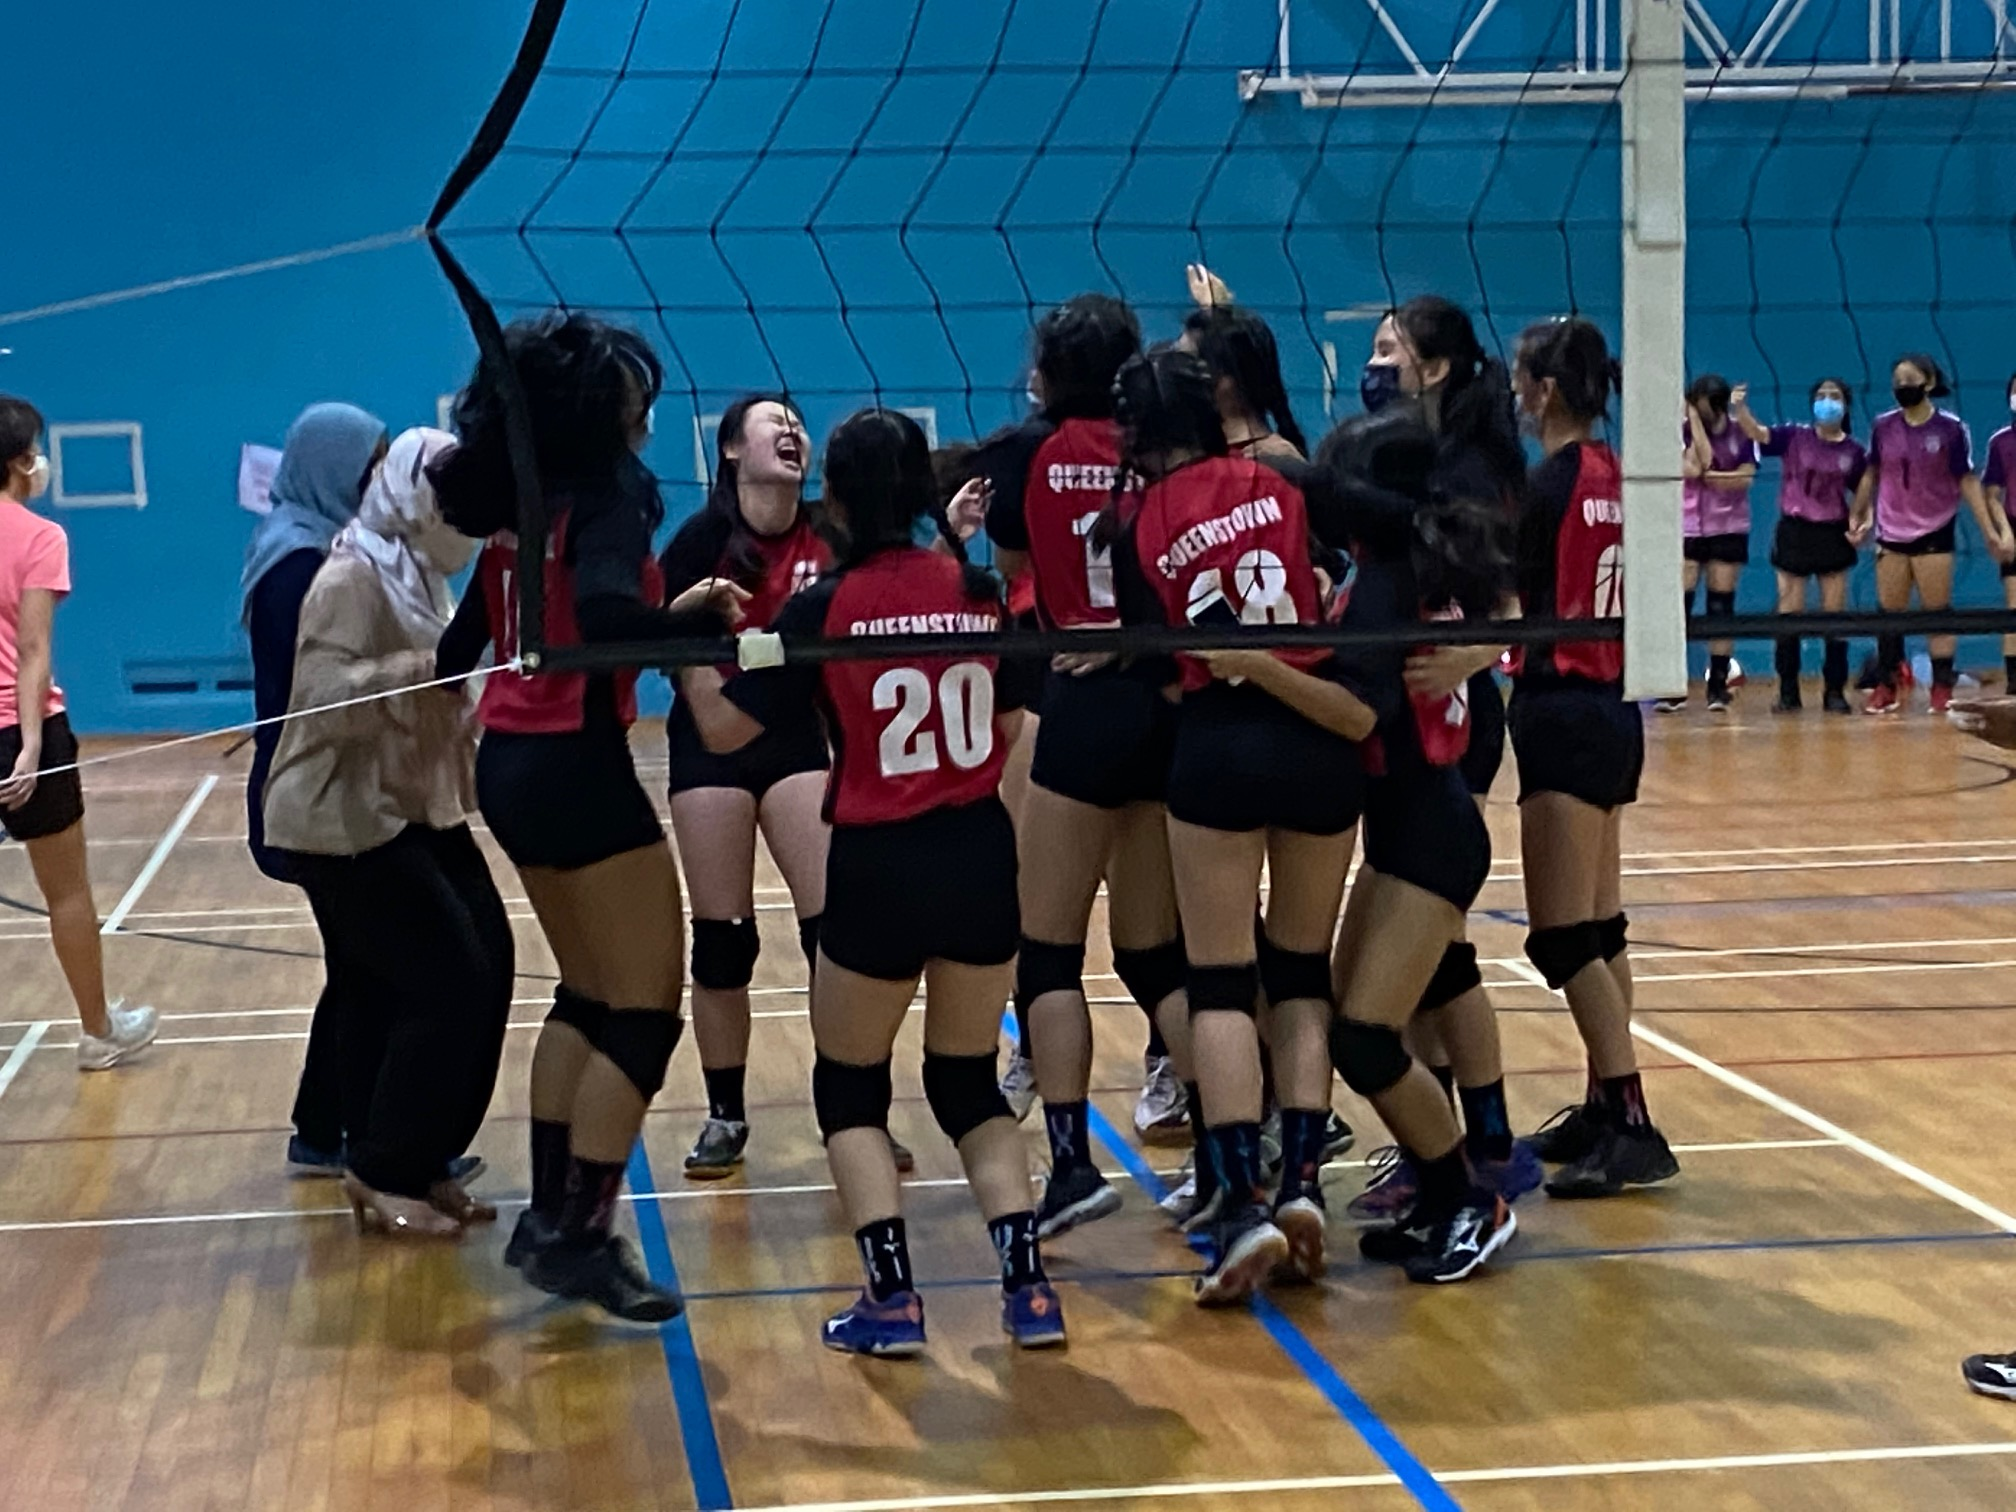 NSG South Zone B Div girls volleyball final - Queenstown (red) v Queensway (purple) 4